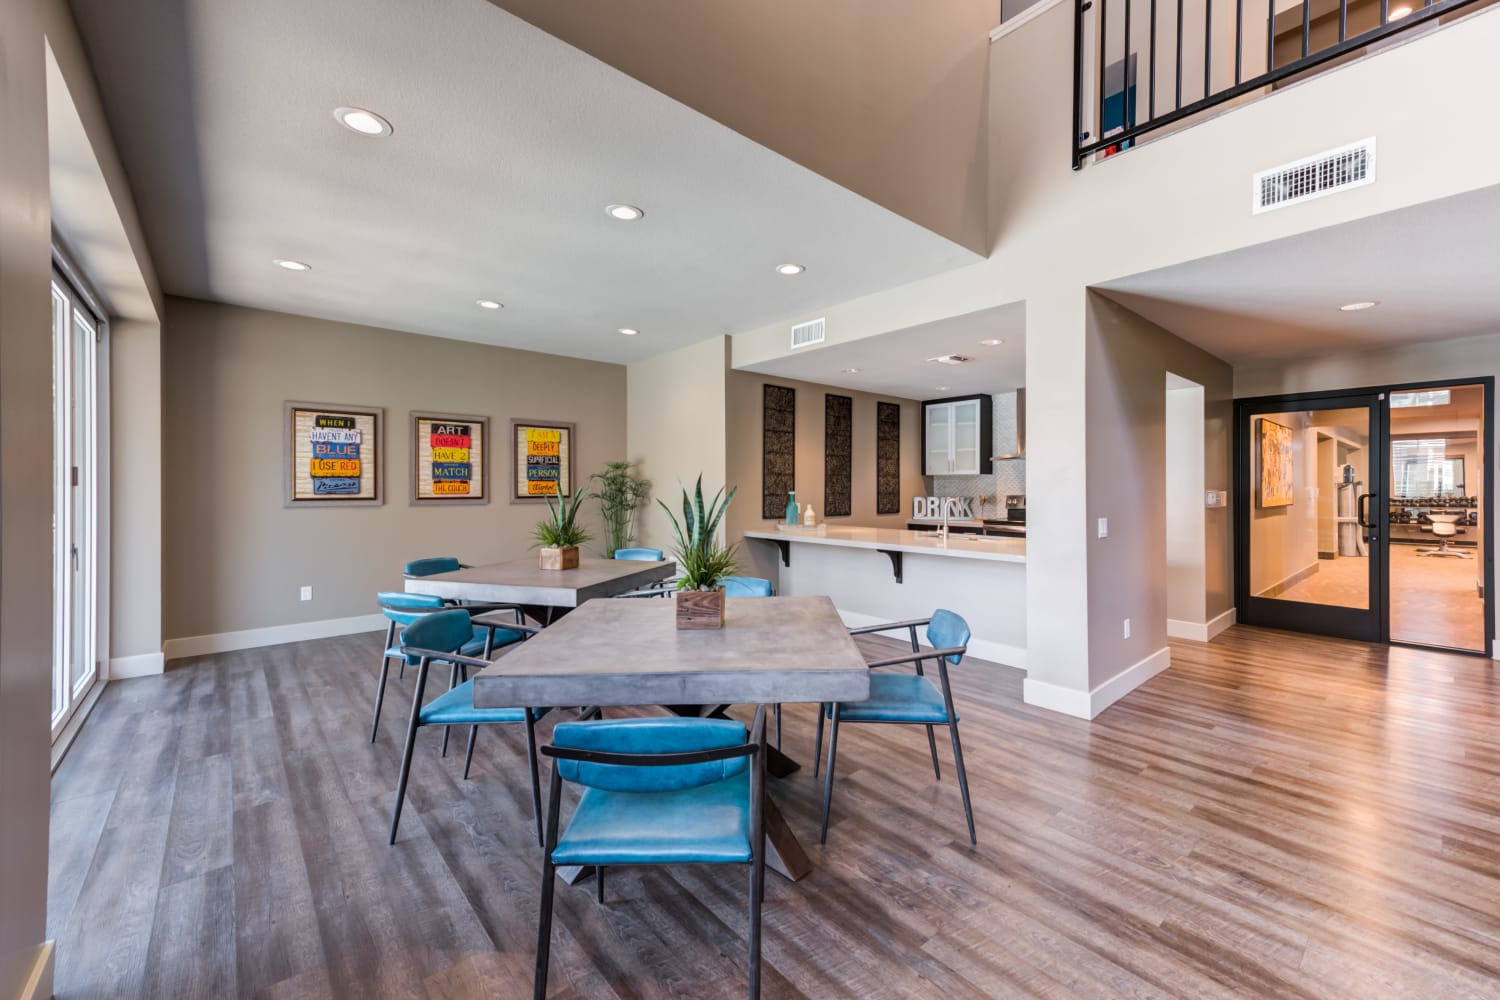 The Spacious clubhouse at Sierra Heights Apartments in Rancho Cucamonga, CA features art on the walls and community gathering space